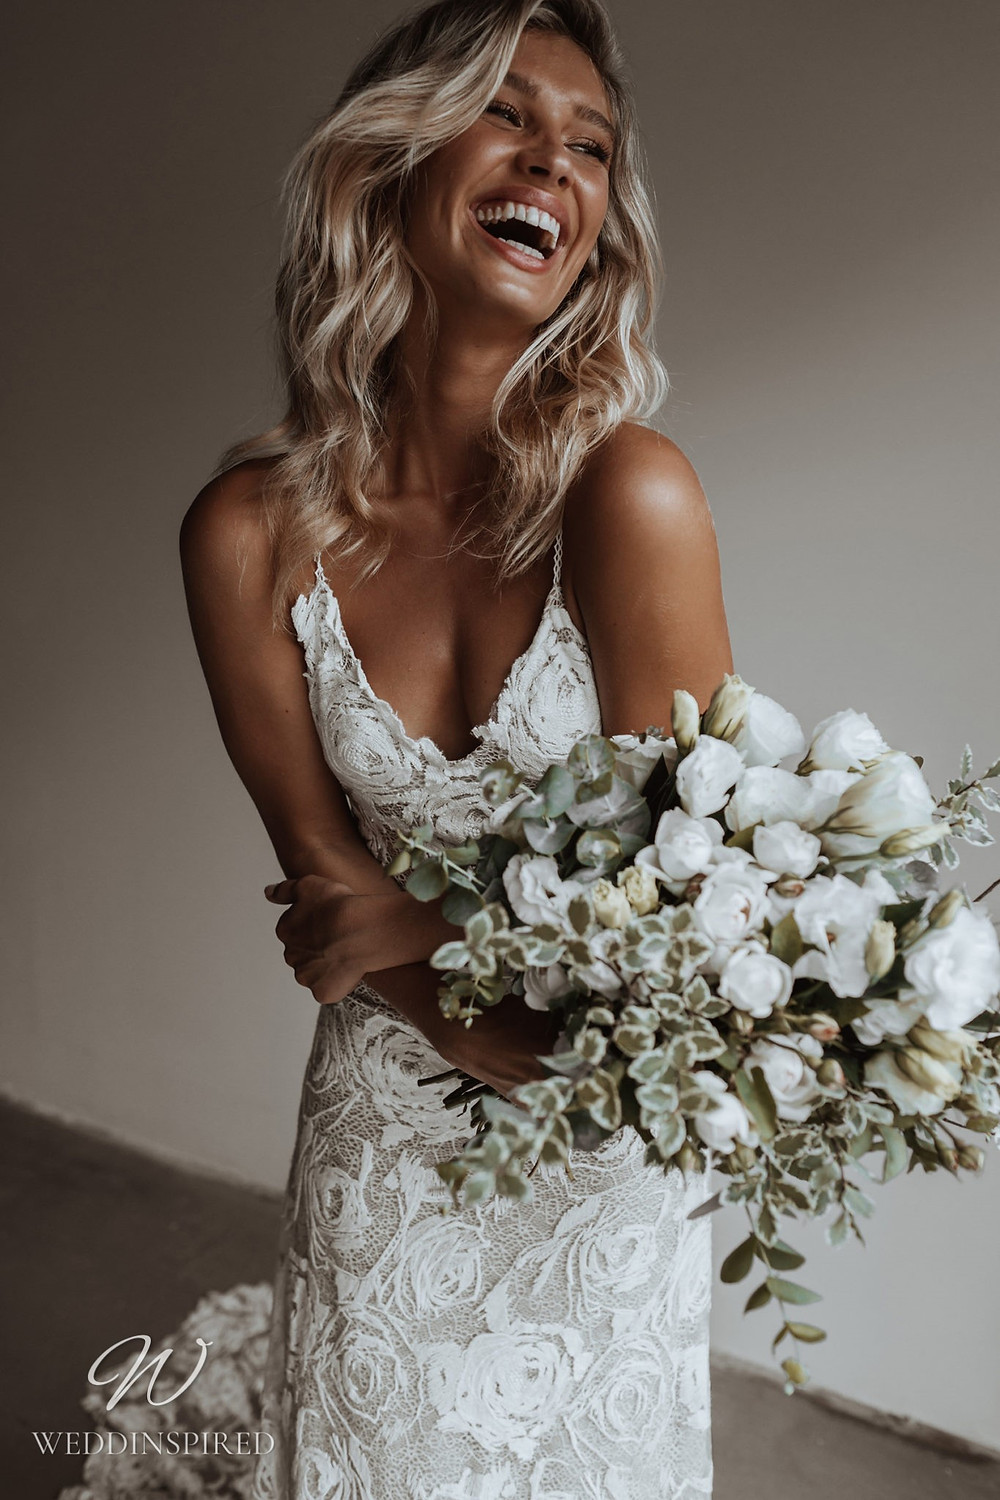 A Grace Loves Lace A-line wedding dress with lace and rose design and a train and thin spaghetti straps